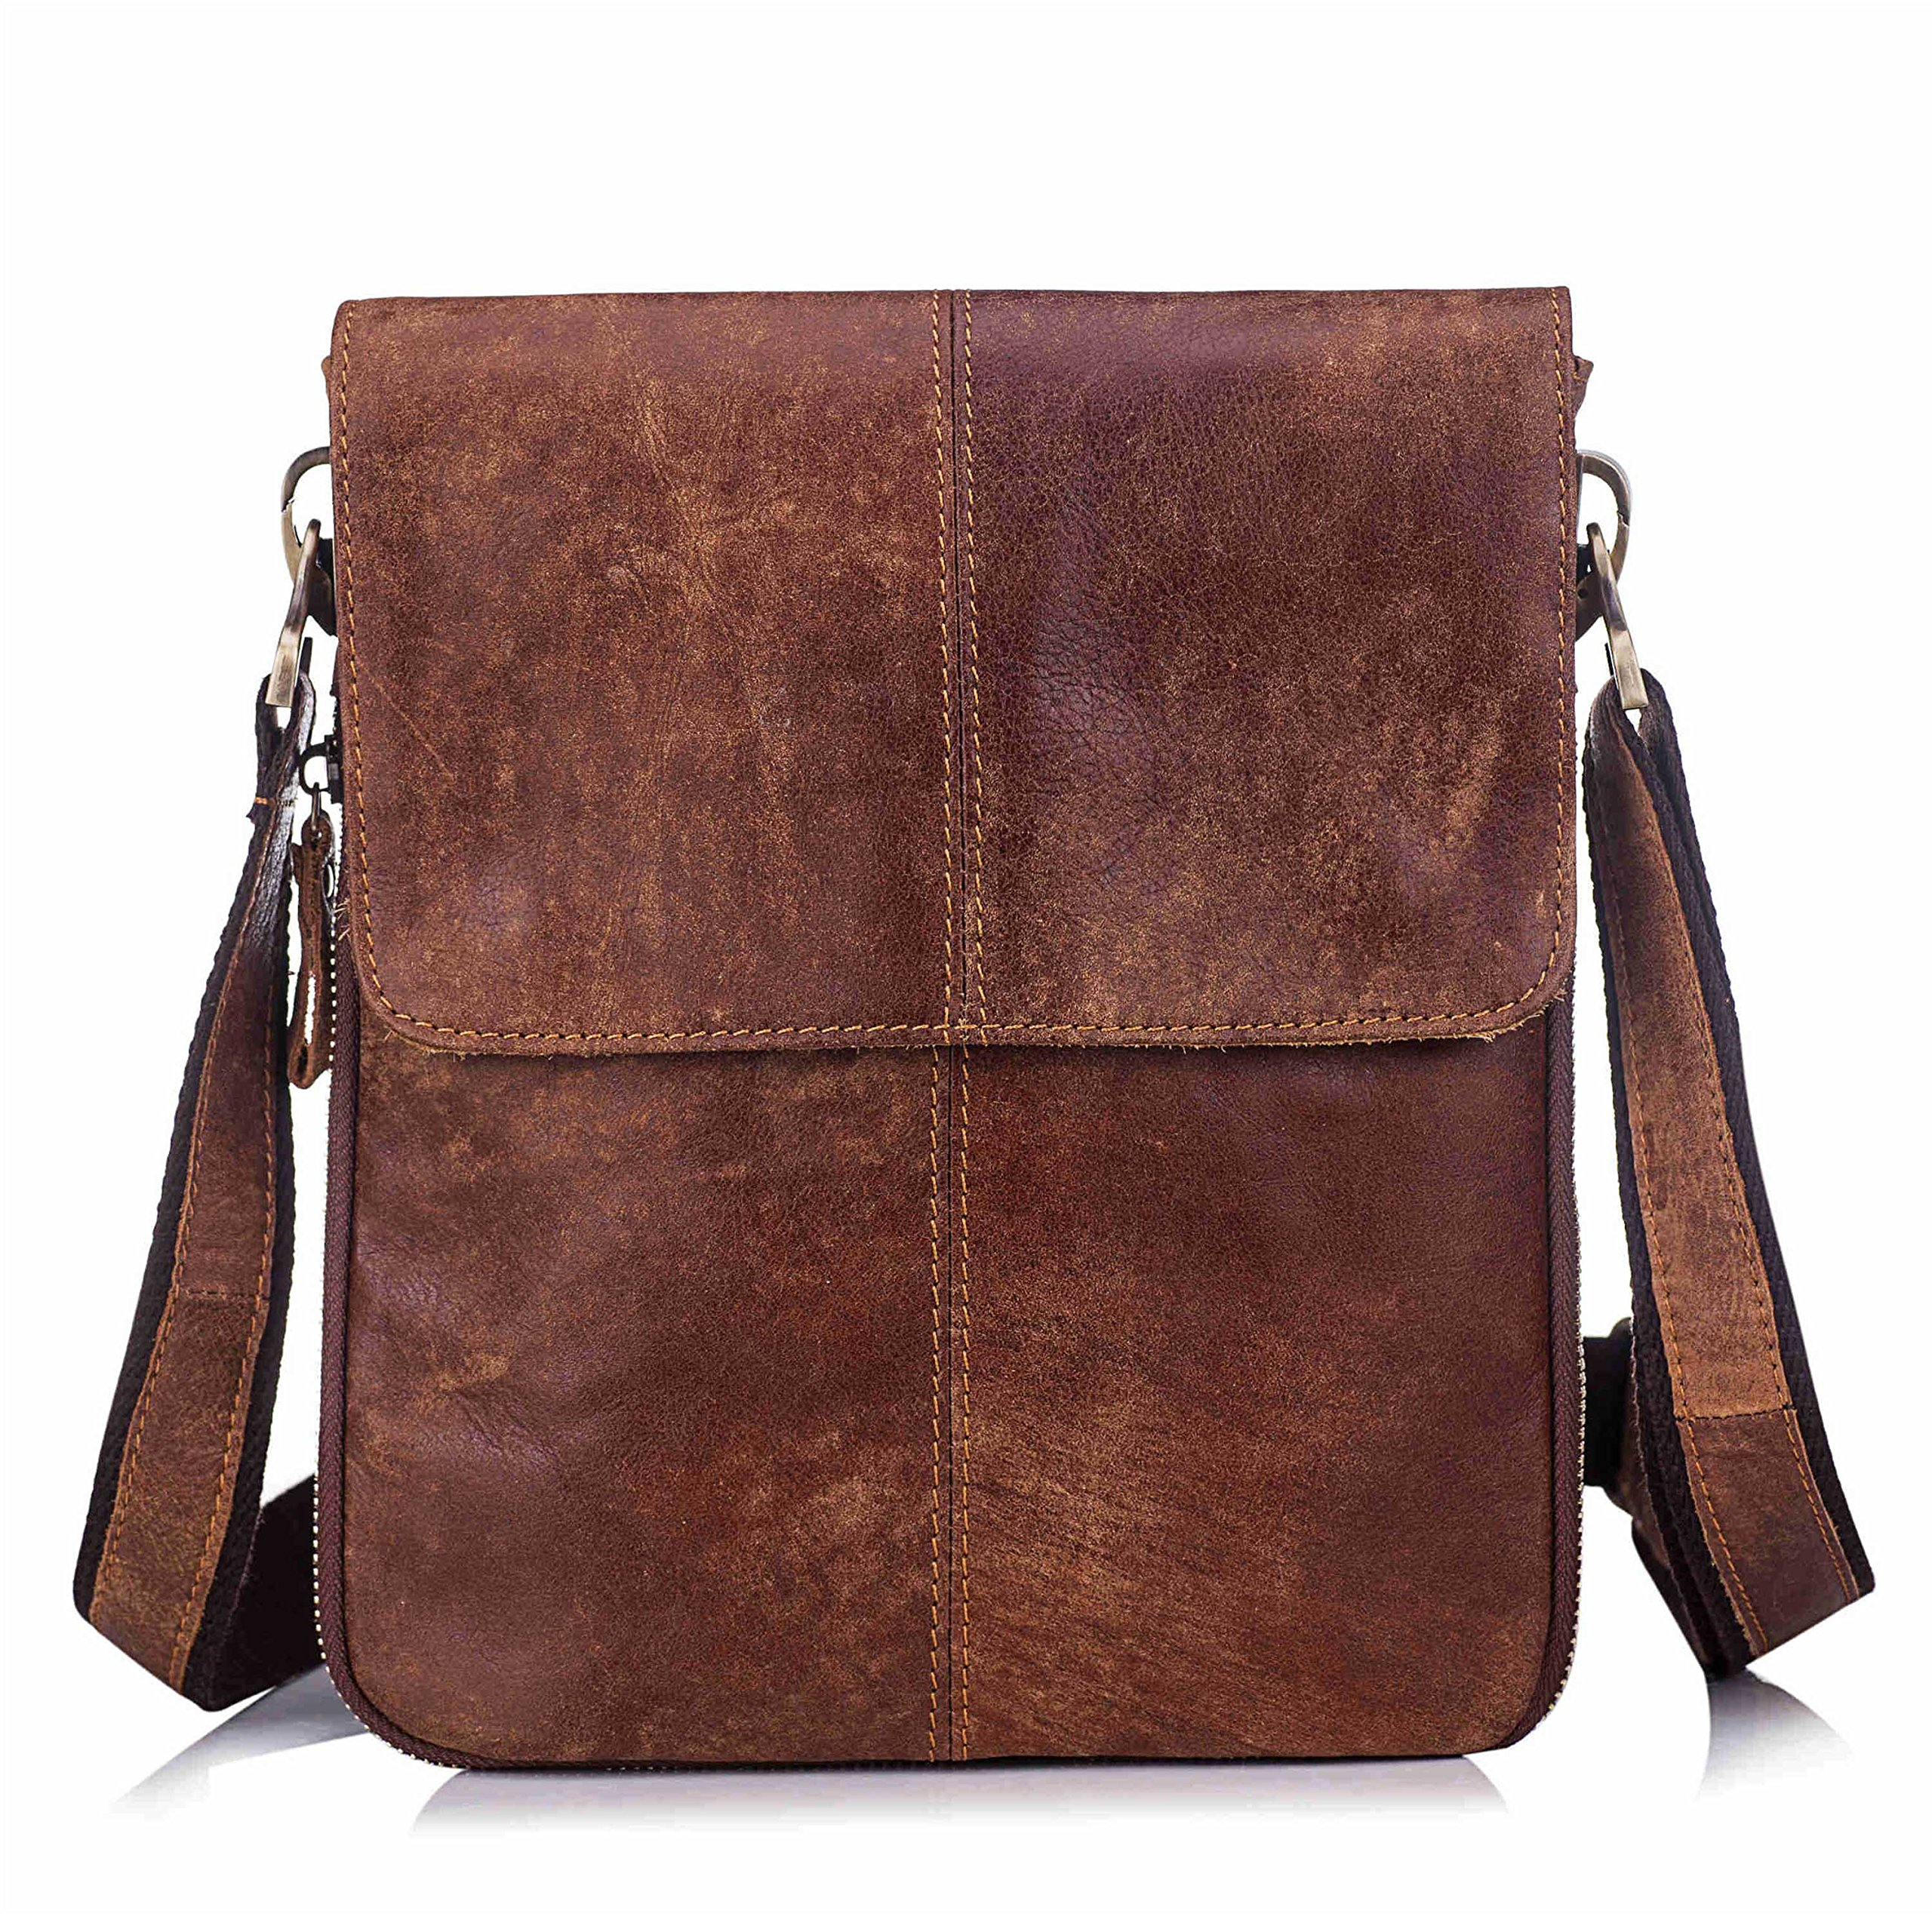 Men's Genuine Leather Crossbody Bag Retro Small Satchel Messenger Shoulder Purse with Flap (Brown)